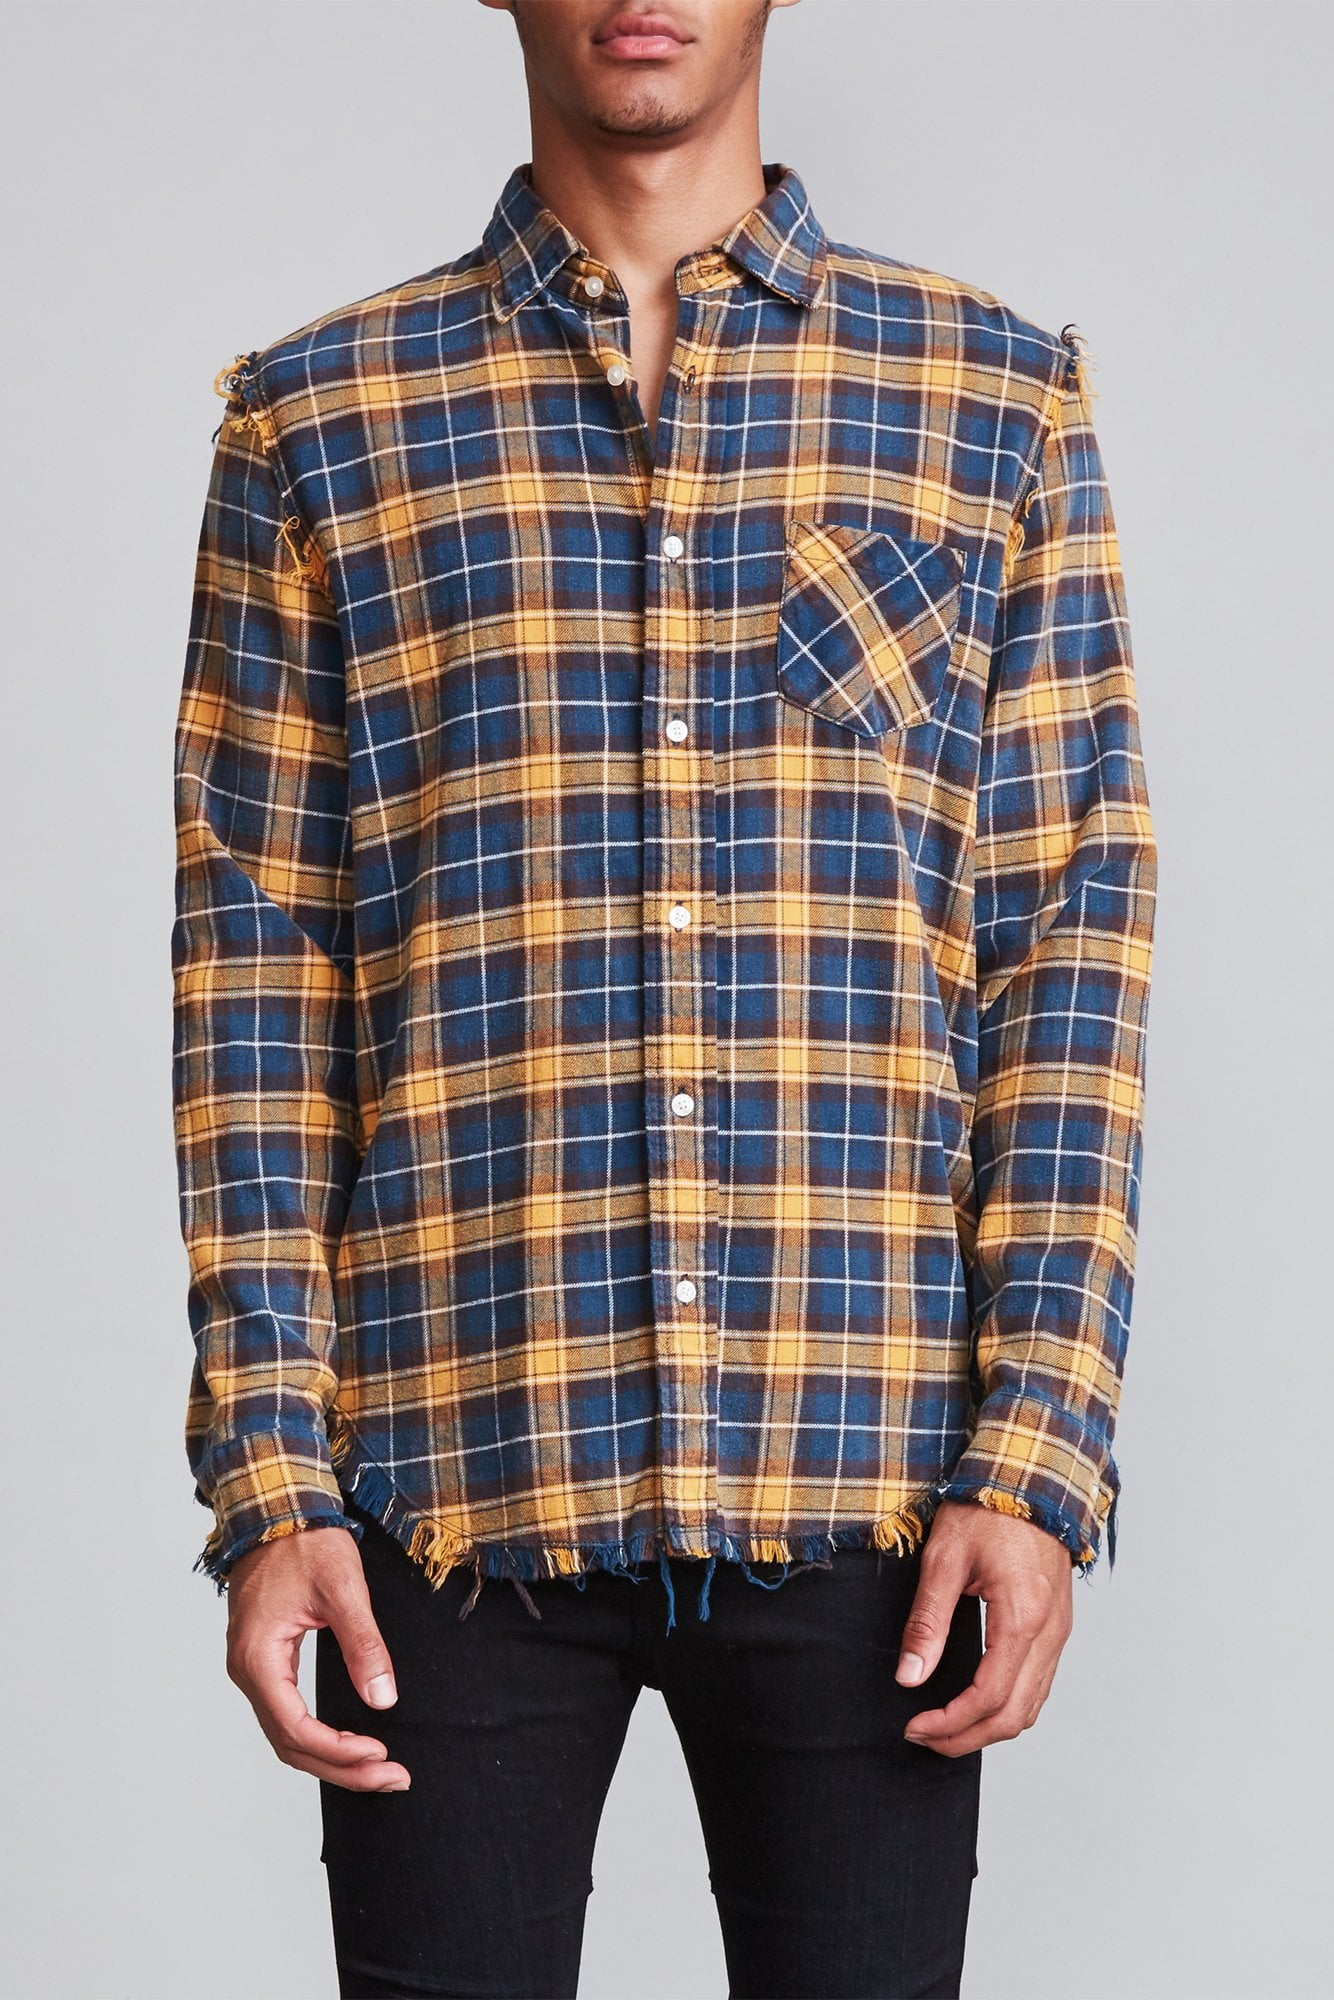 Shredded Seam Shirt - Blue and Yellow Plaid